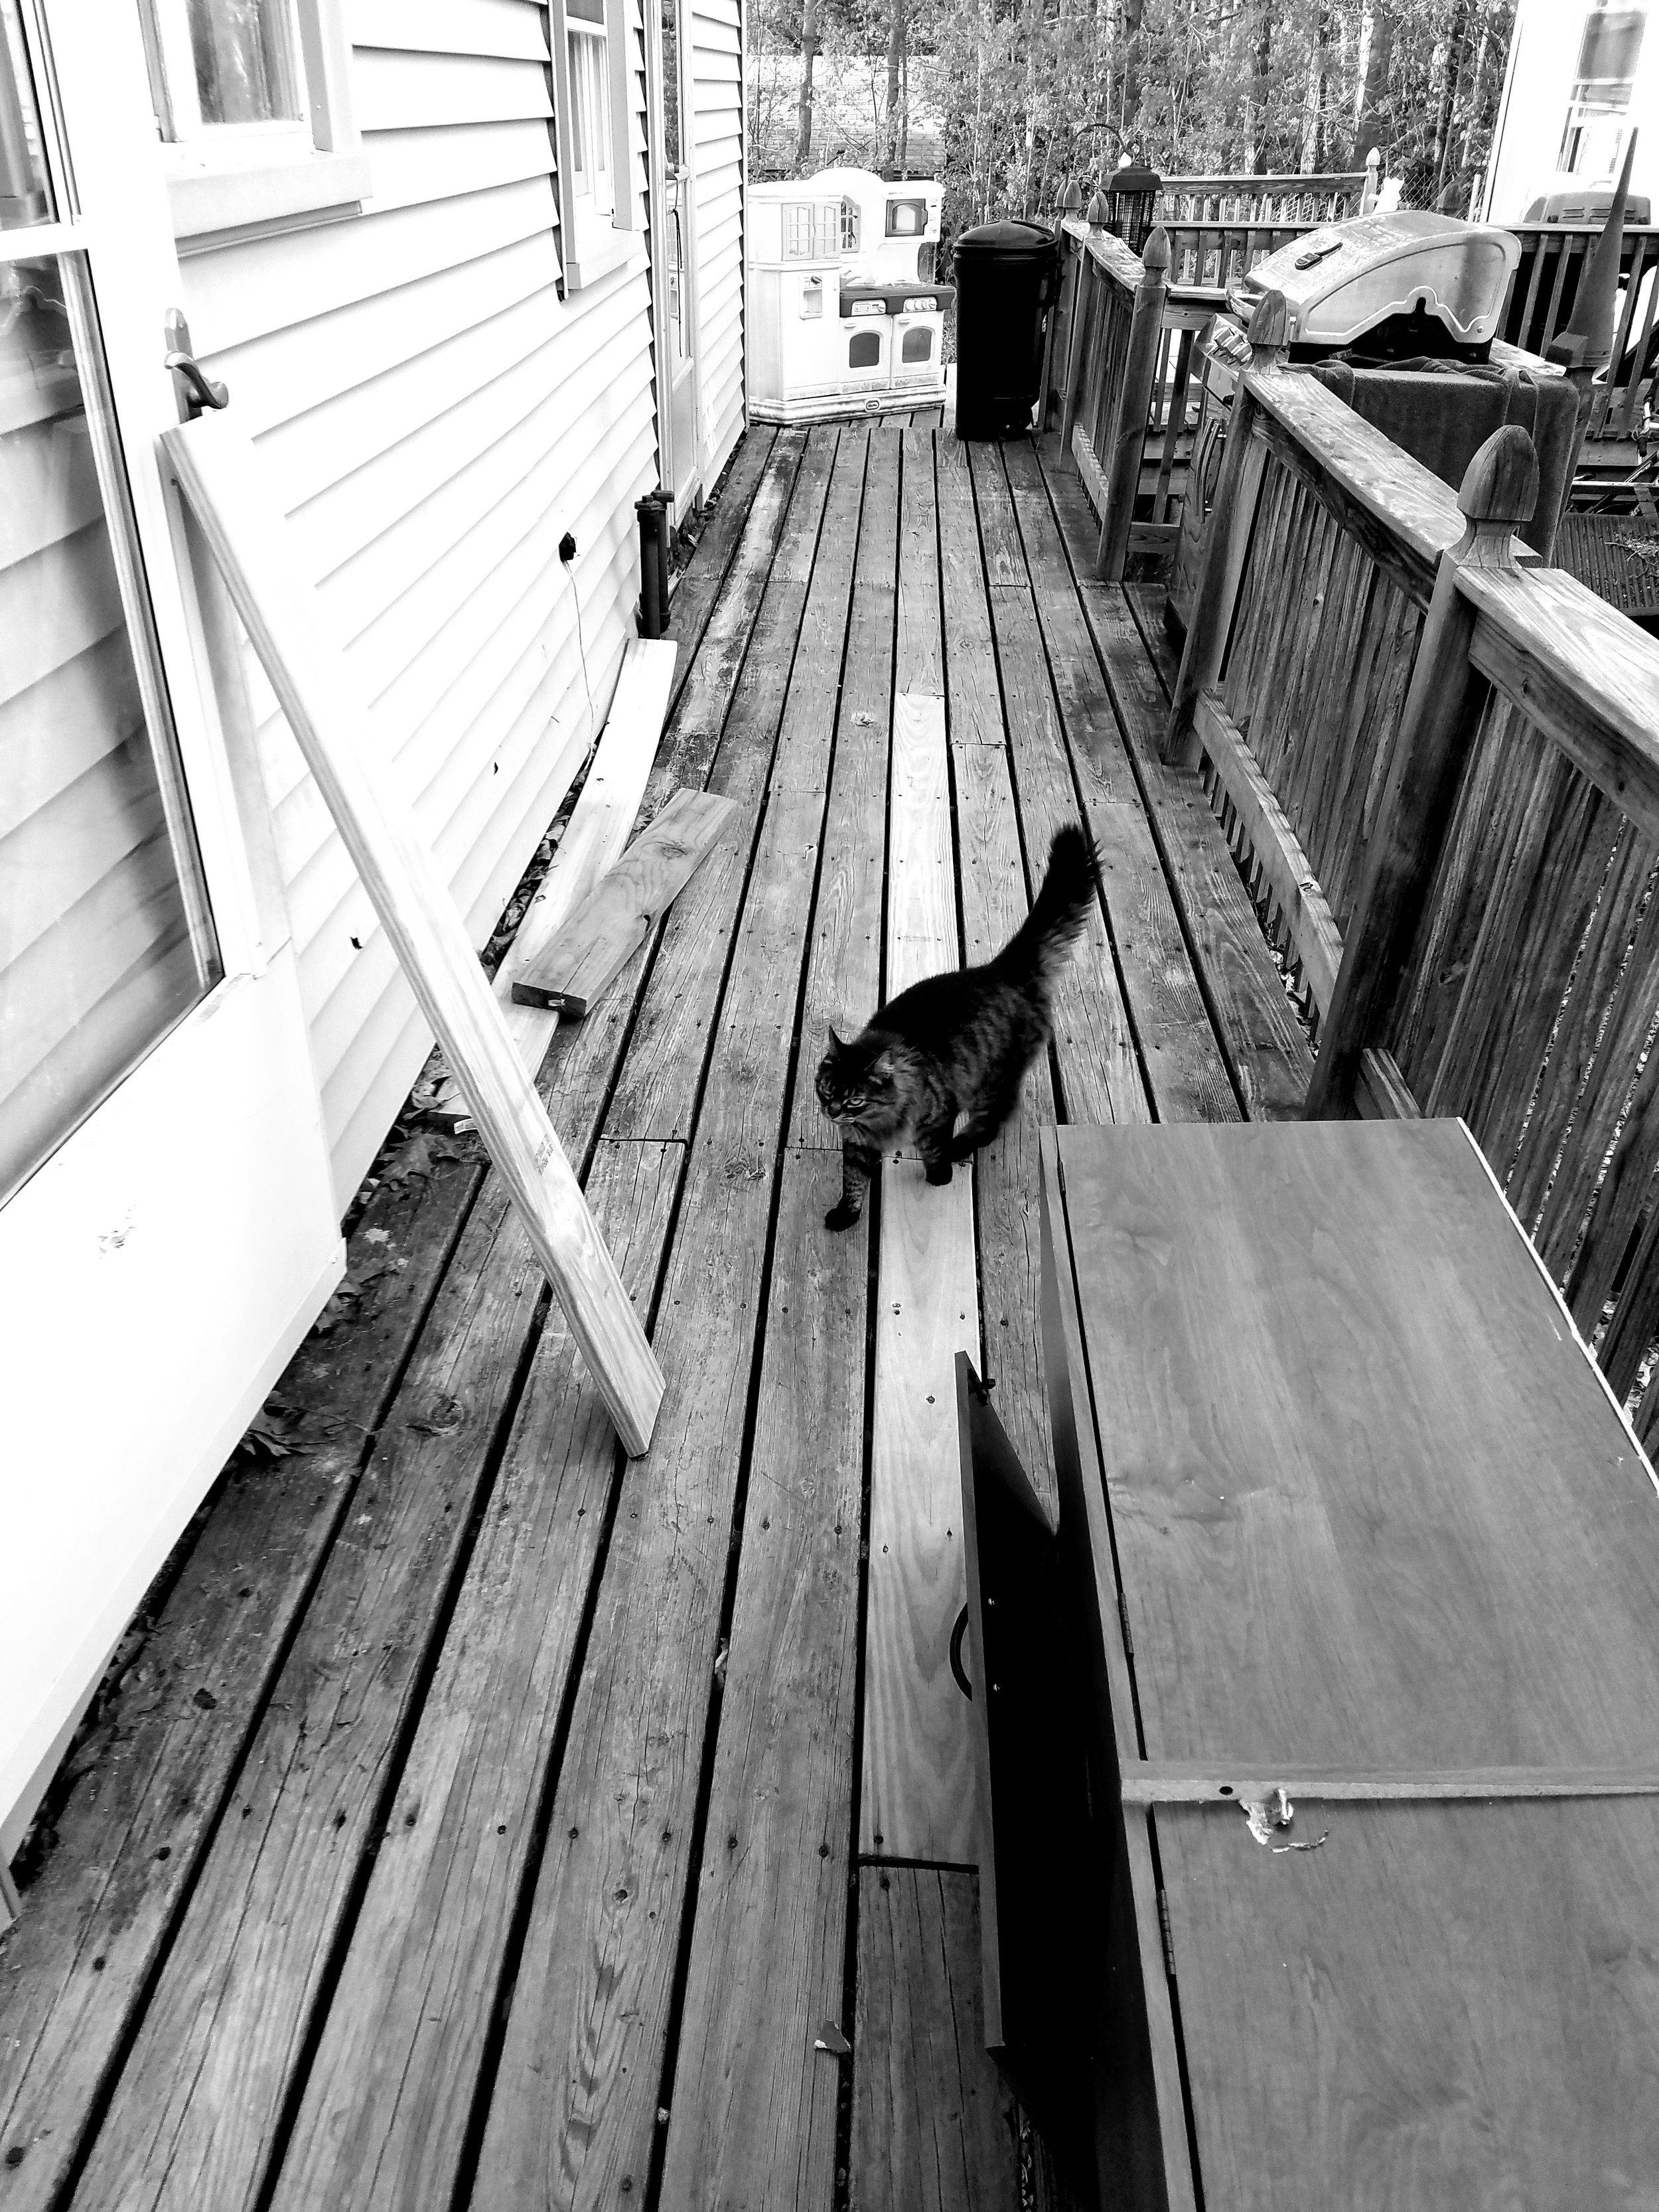 Tina's family's cat outside their home in Lisbon. (Maine Public photo by Susan Sharon)